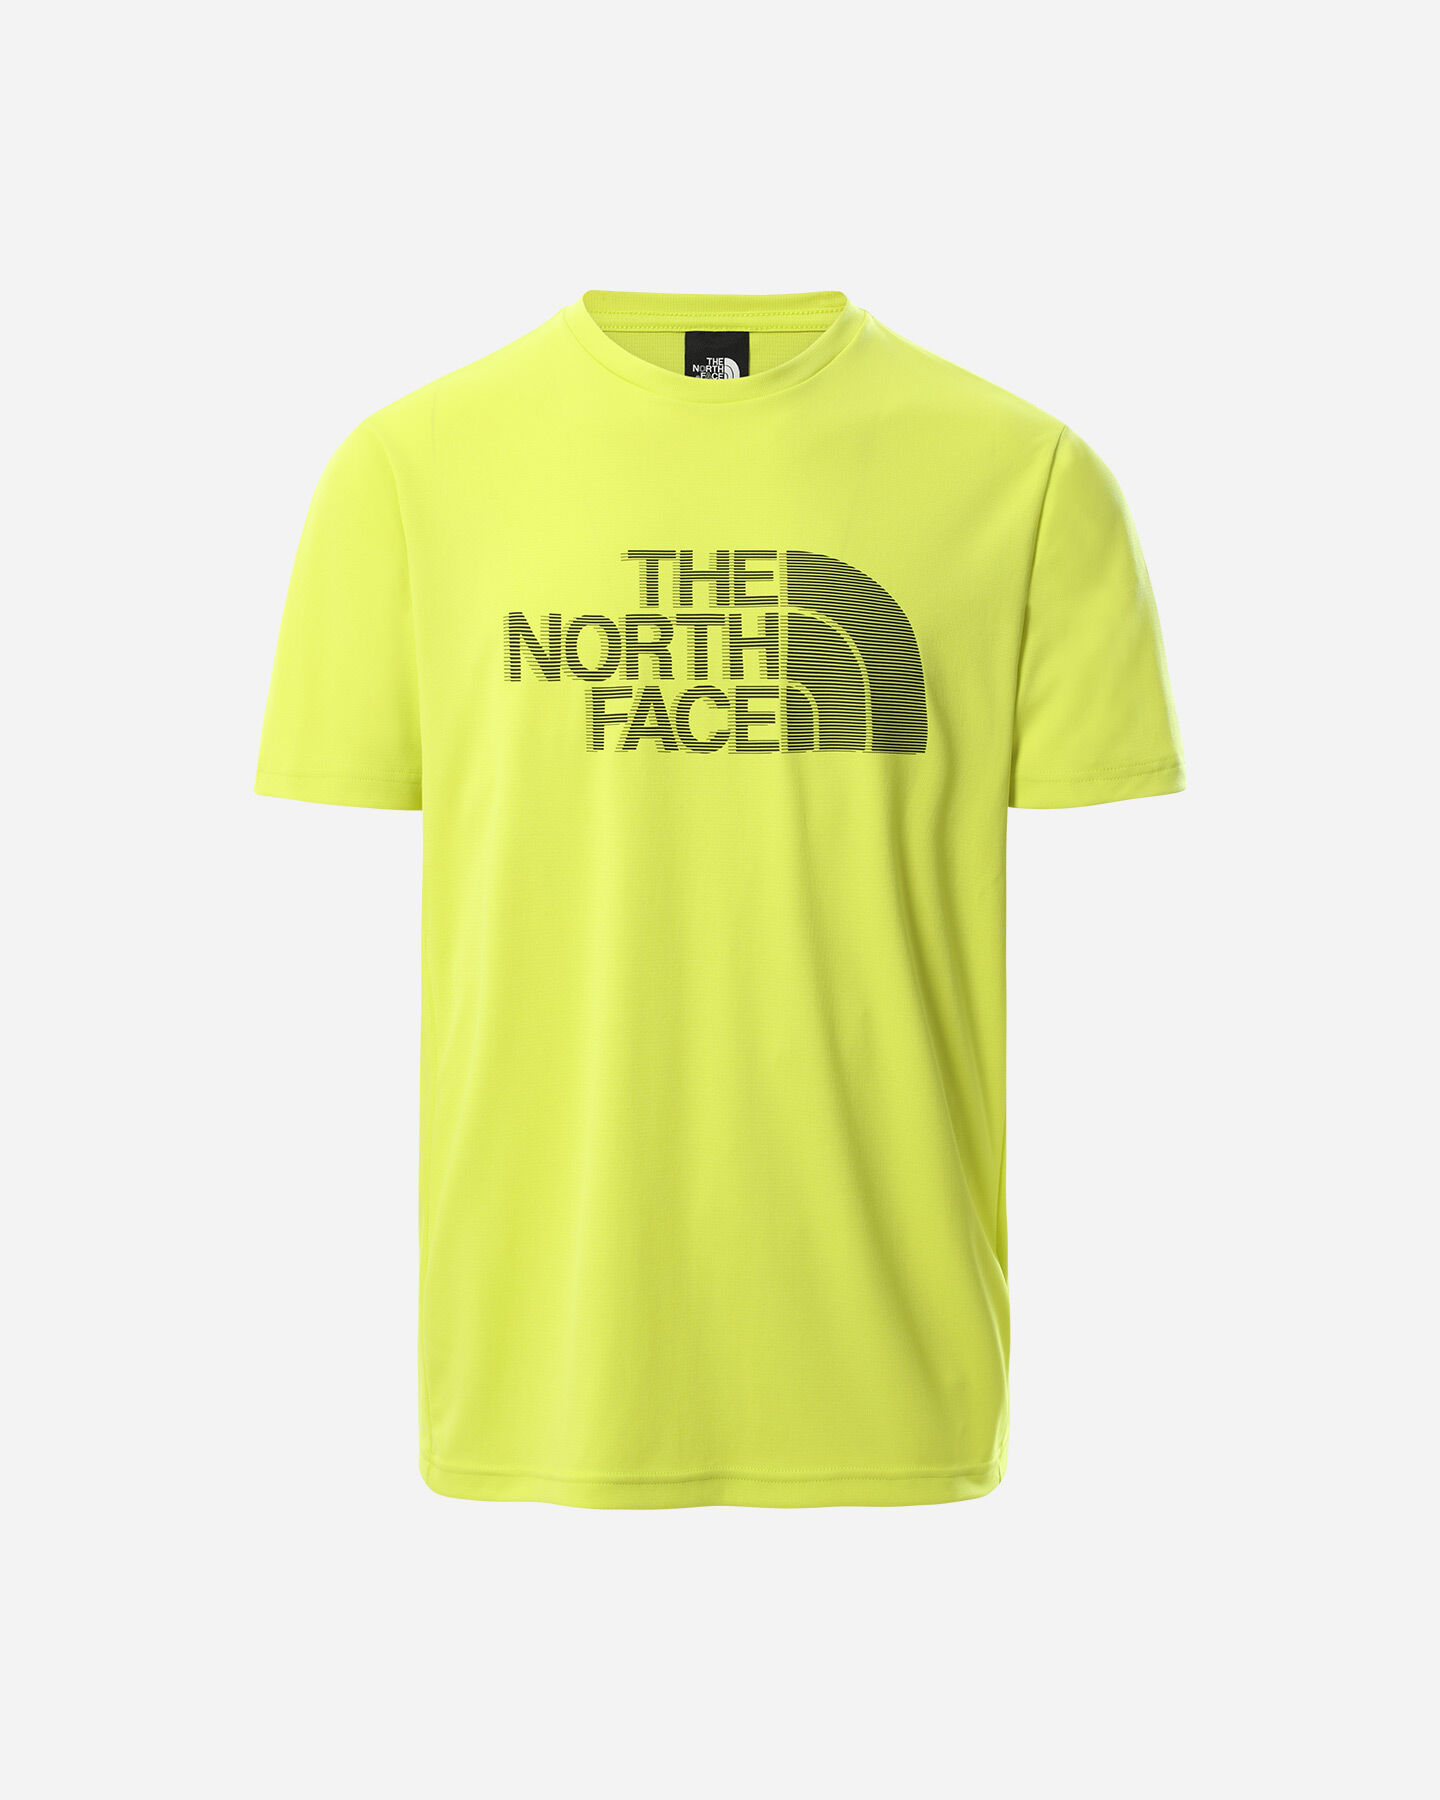 T-Shirt THE NORTH FACE EXTENT III M S5296477 scatto 0